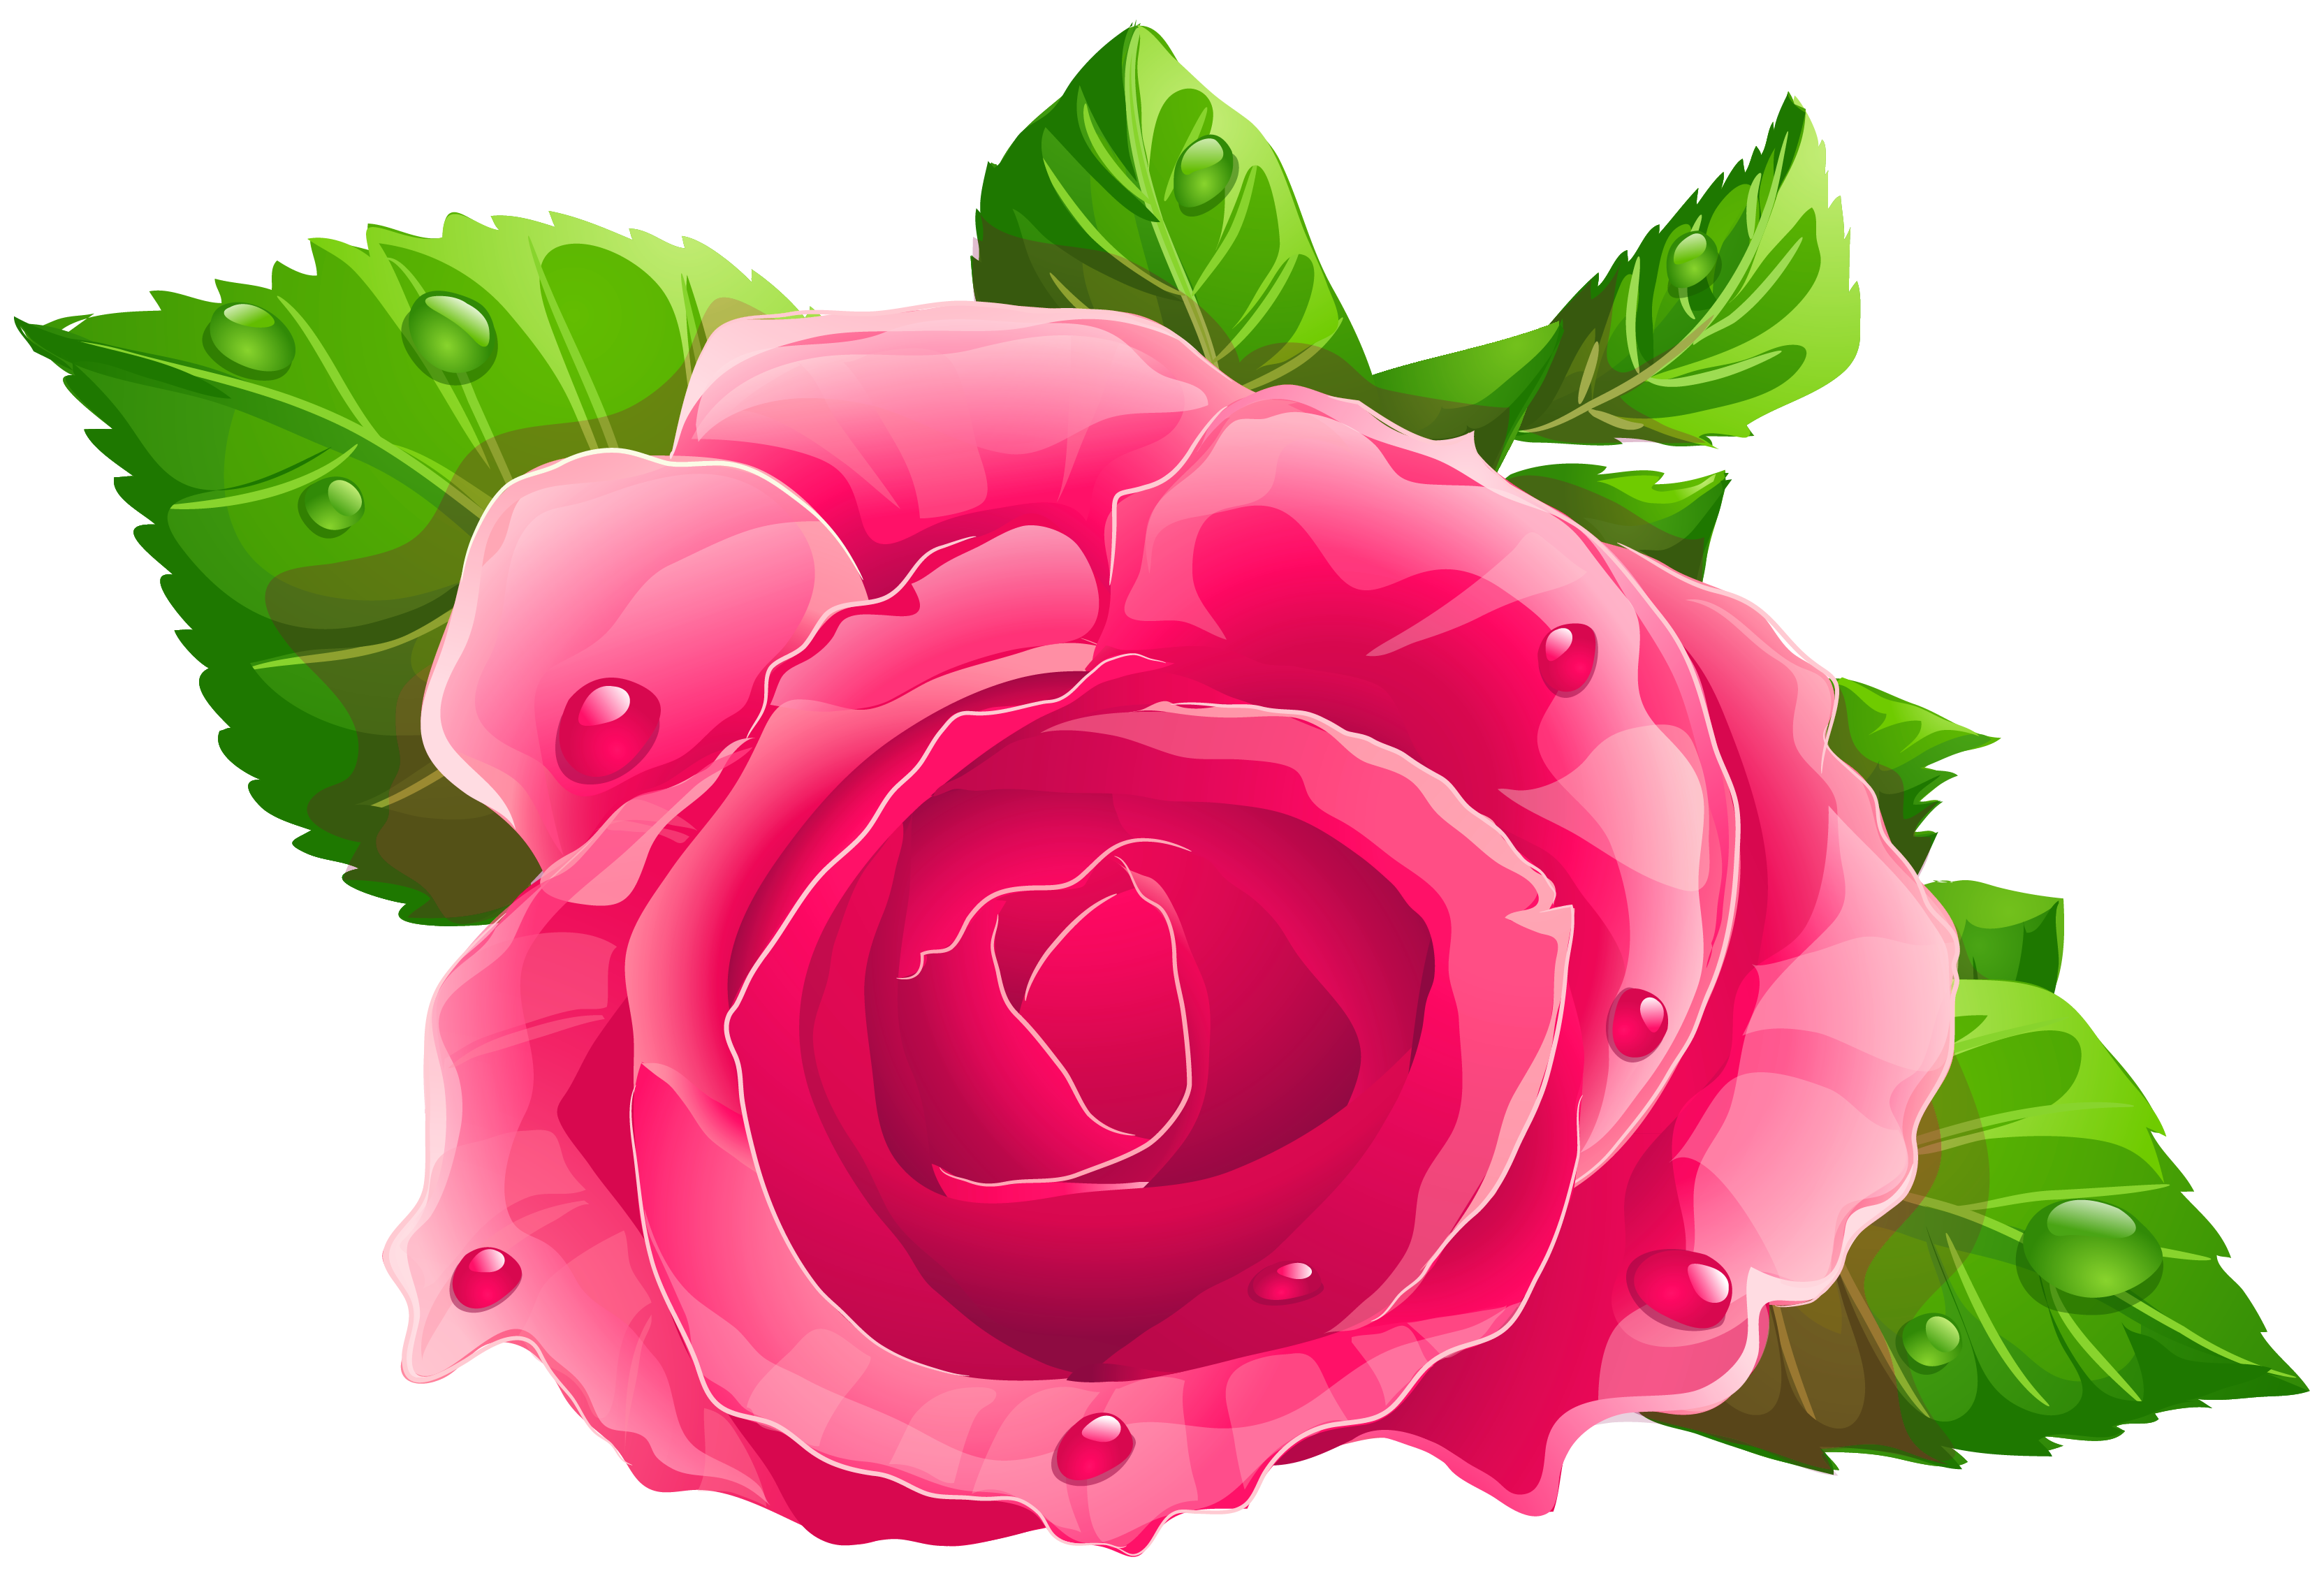 Roses flower clipart graphic black and white Download ROSE Free PNG transparent image and clipart graphic black and white